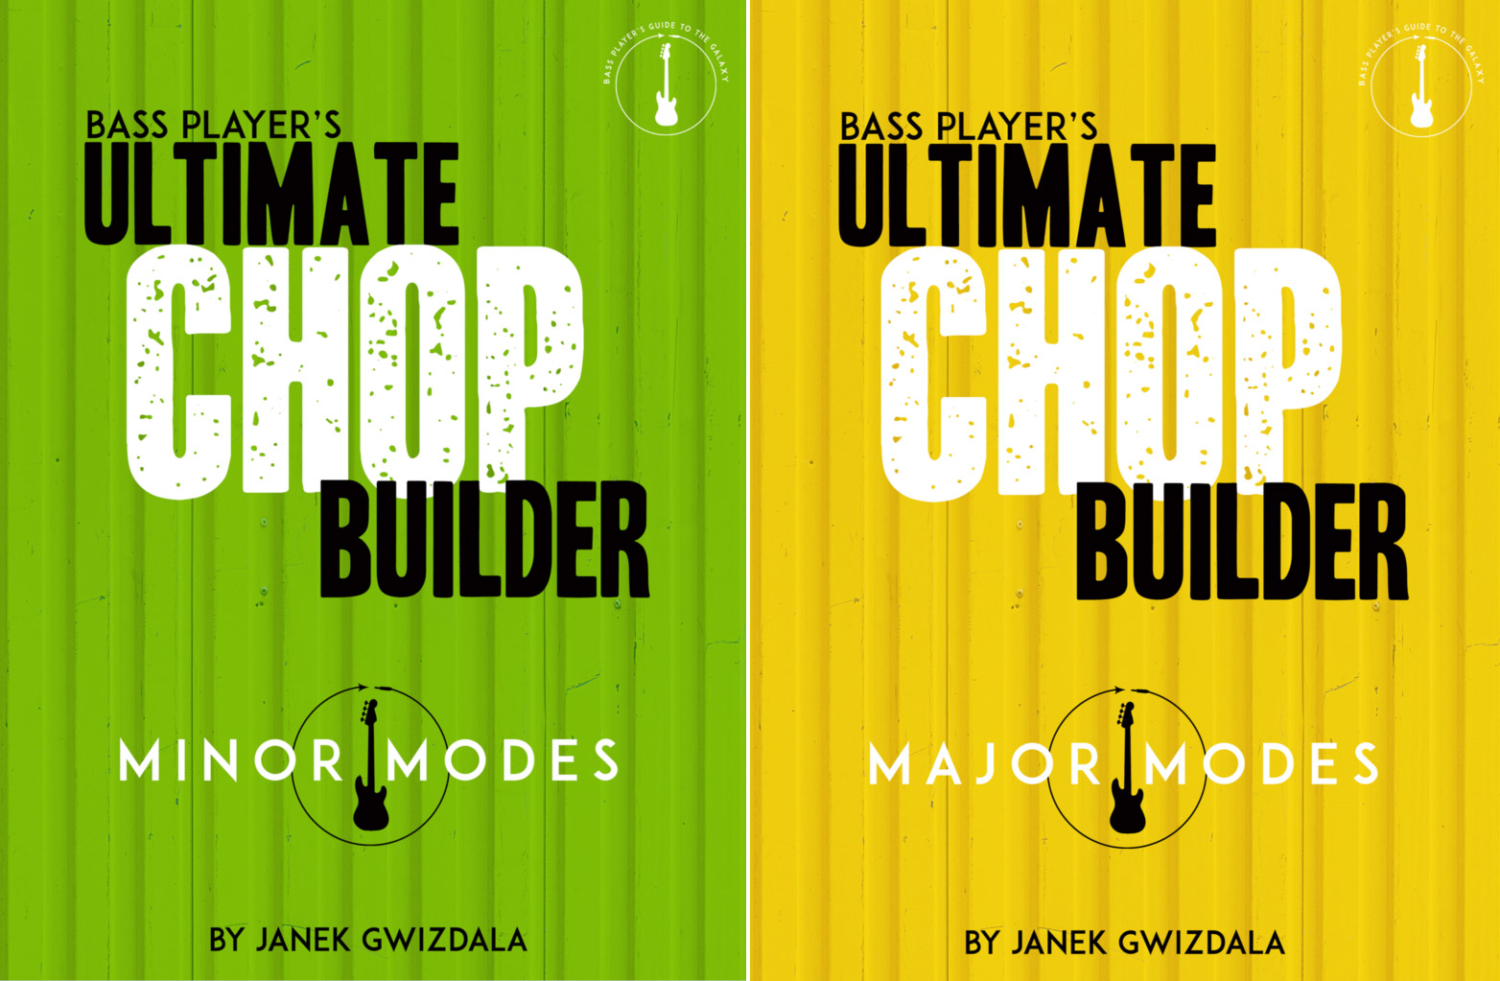 The Bass Player's Ultimate Chop Builder - Major and Minor